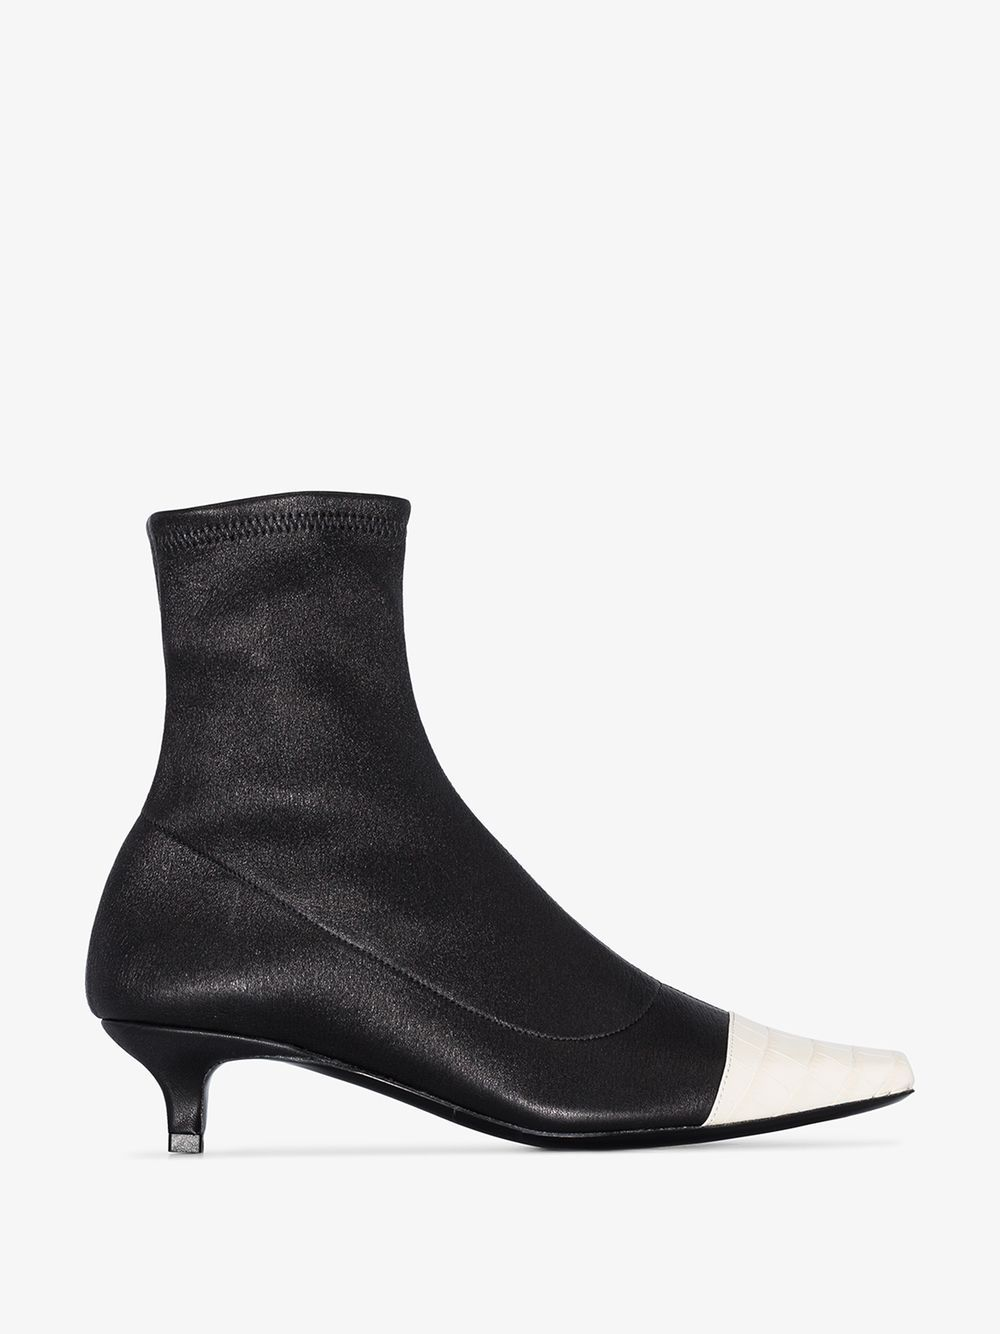 Karl Two Tone Stretch And Croc Effect Leather Sock Boots In Black Leather Sock Boots Boots Leather Socks